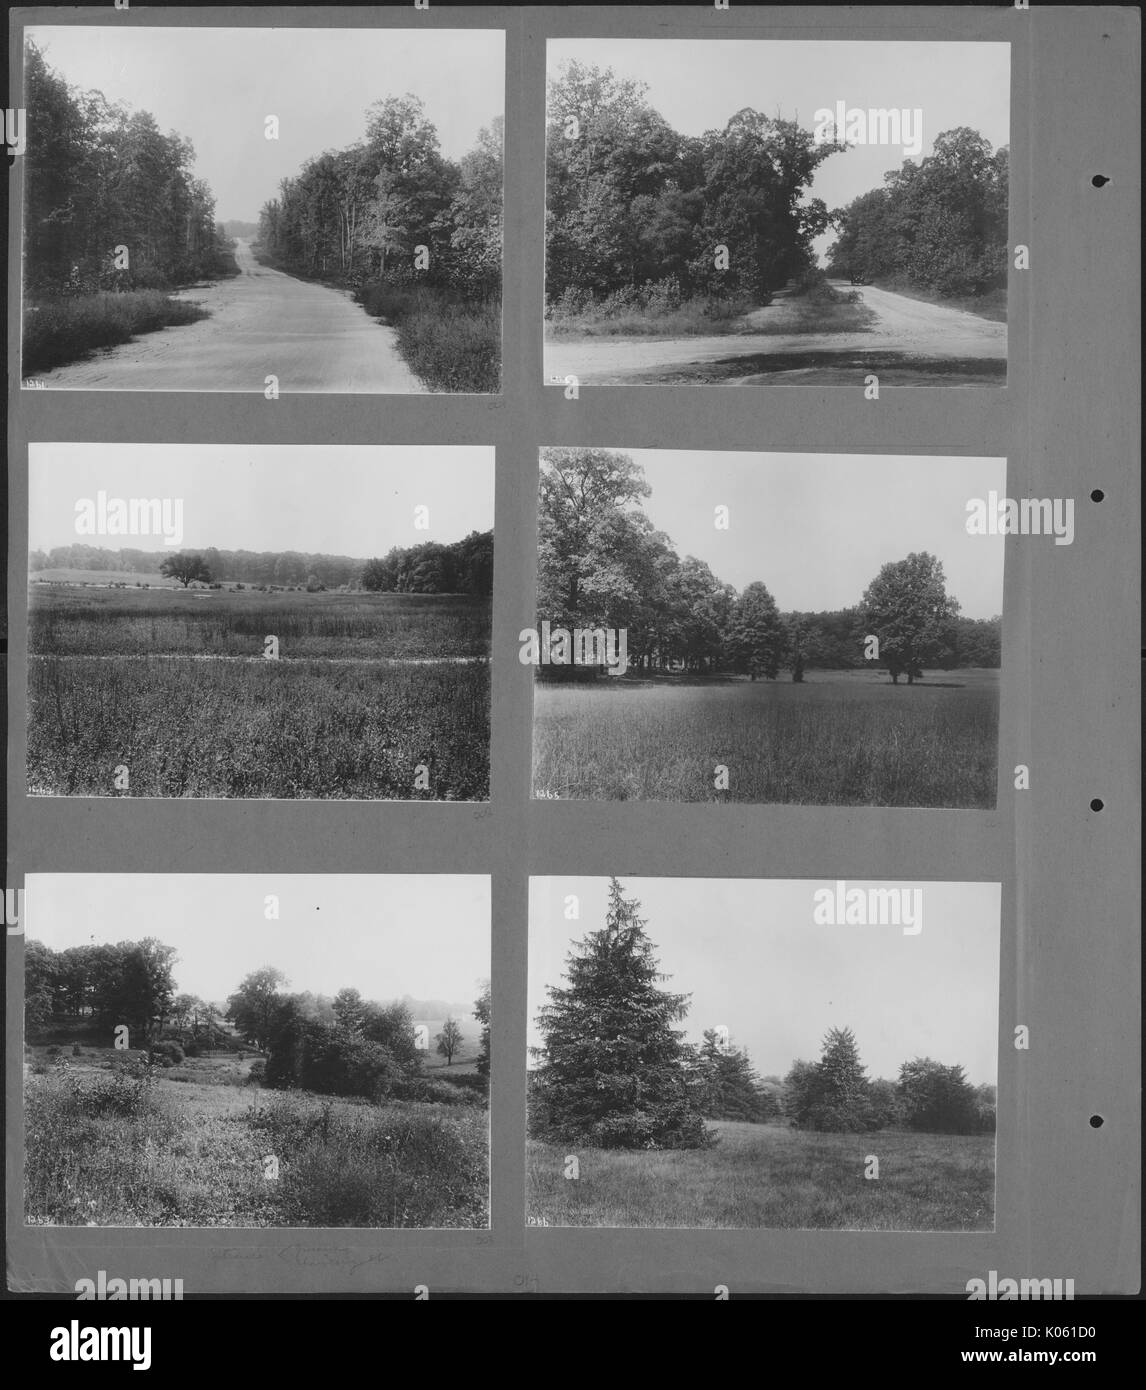 Six small photos of unoccupied land of Roland Park and Guilford, the land is composed of untrimmed grass and trees, United States, 1910. This image is from a series documenting the construction and sale of homes in the Roland Park/Guilford neighborhood of Baltimore, a streetcar suburb and one of the first planned communities in the United States. - Stock Image